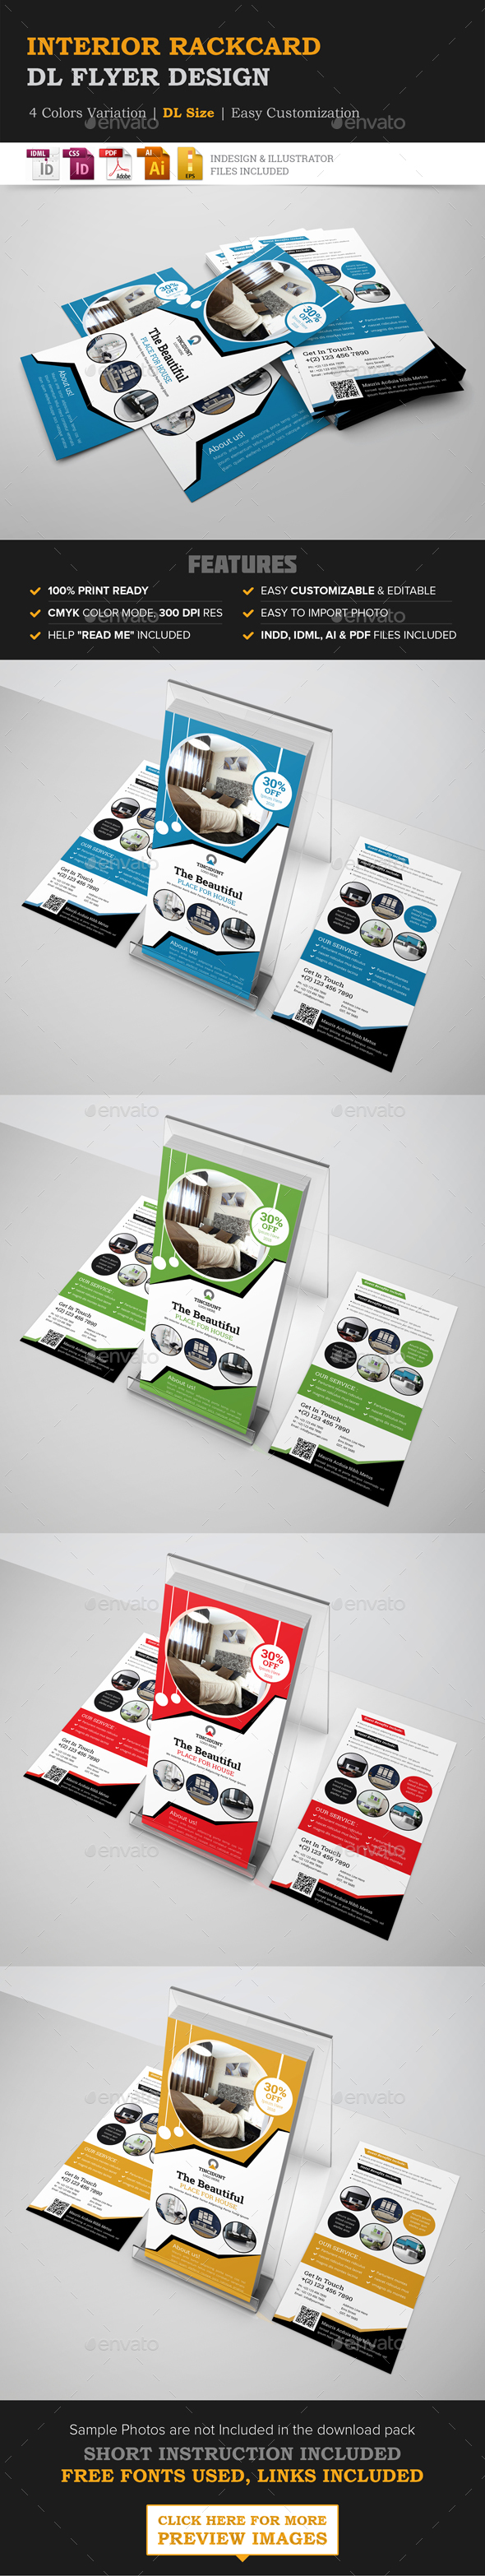 Interior Rack card DL Flyer Design Template - Corporate Flyers